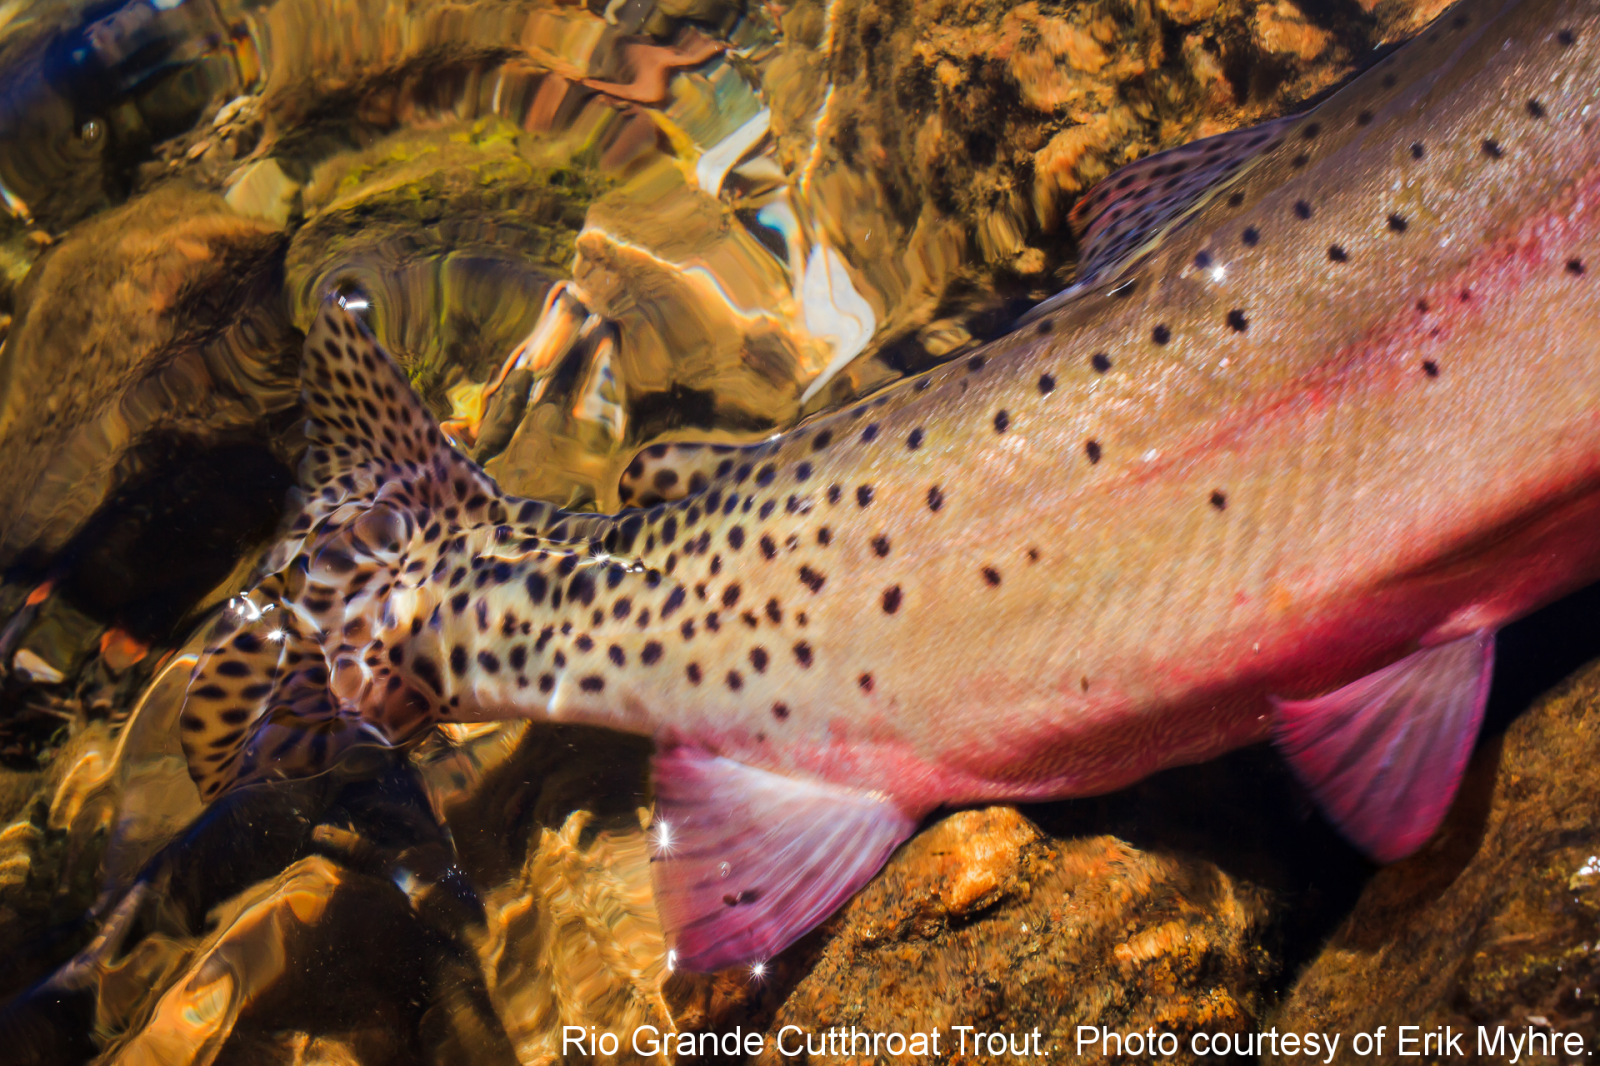 Rio Grande Cutthroat Trout. Photo credit Erik Myhre